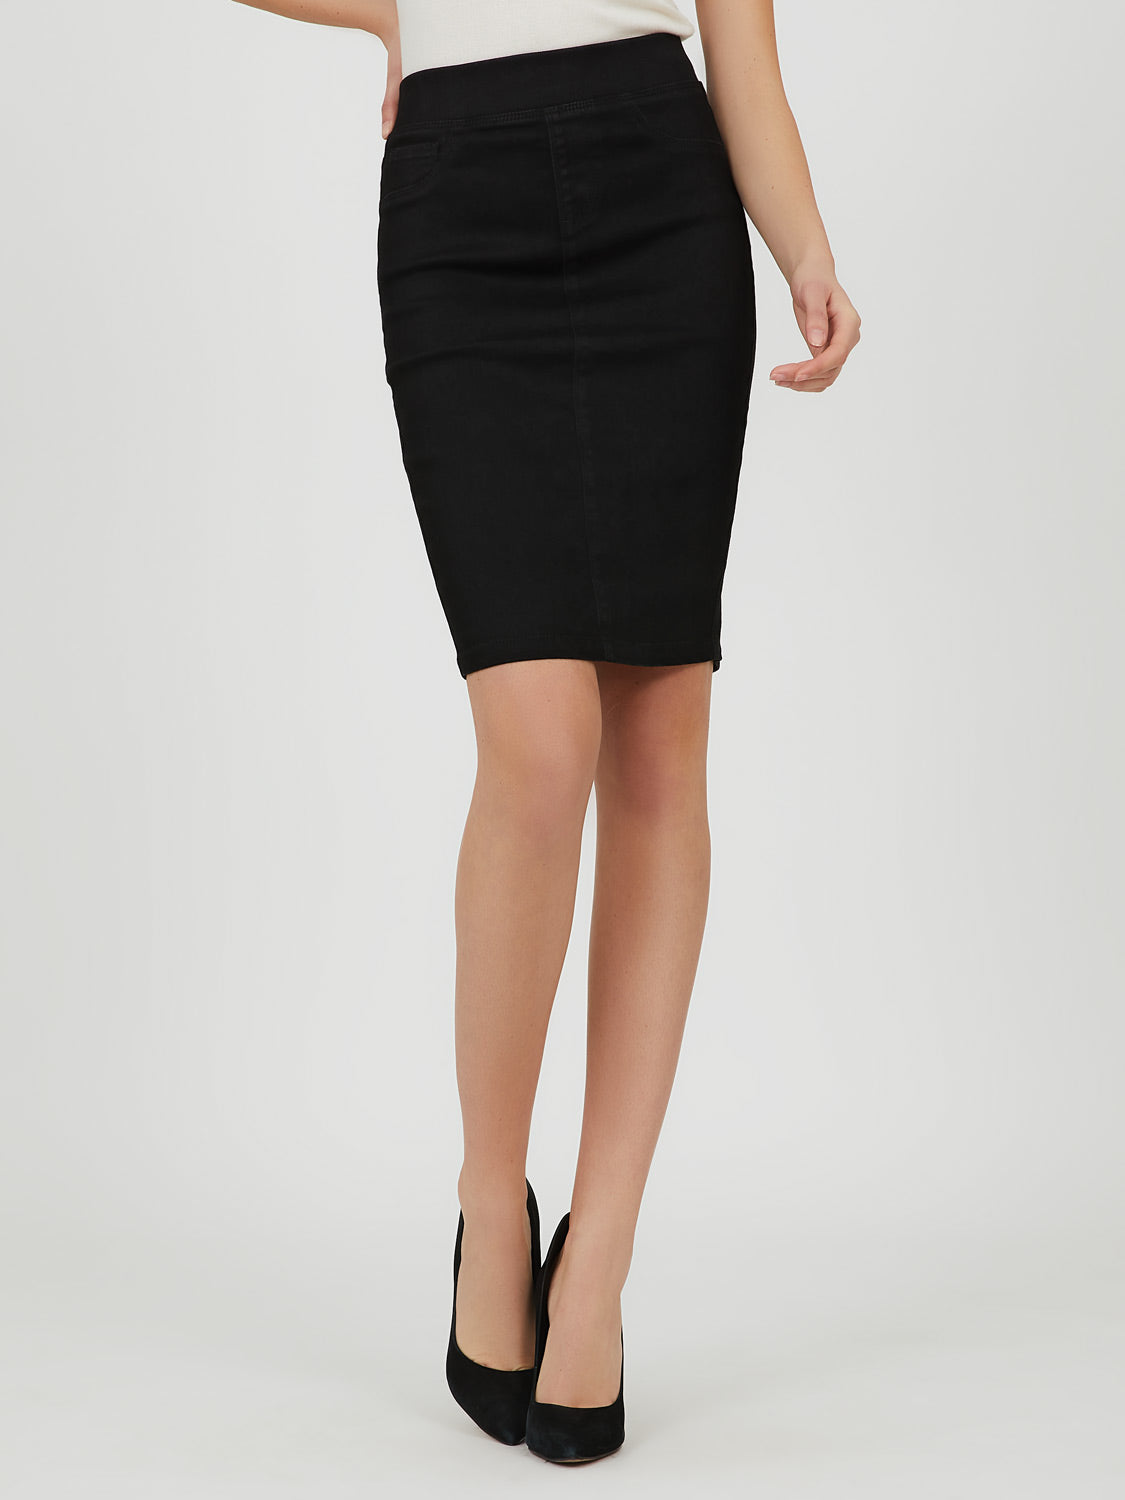 Twill Knit Pencil Mini Skirt